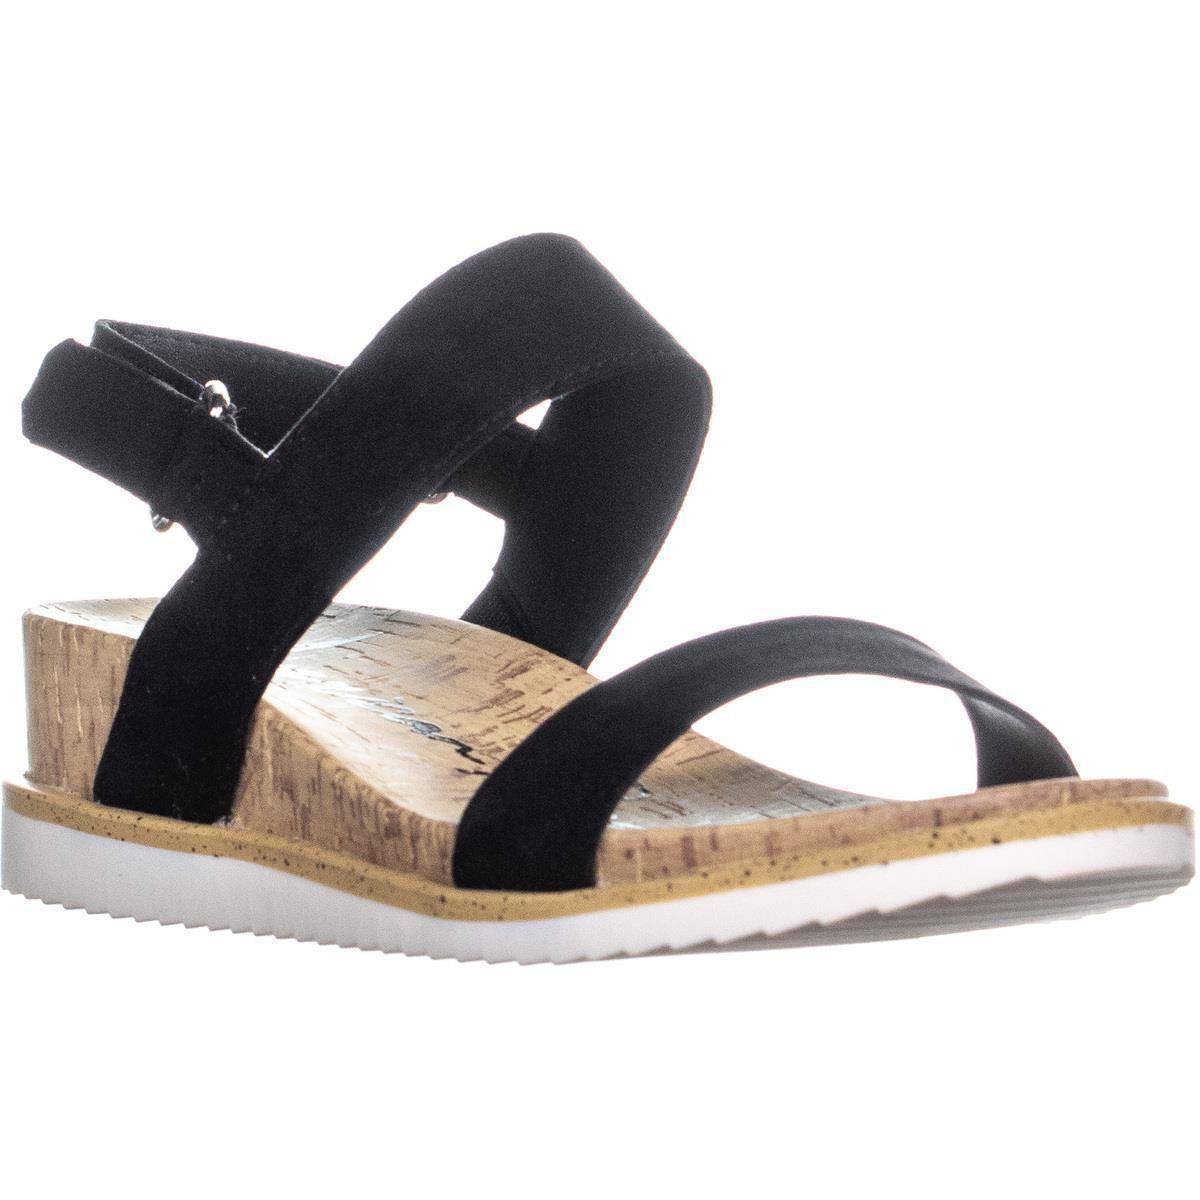 40bab22890a455 American Rag. Women s Ar35 Dalary Ankle Strap Wedge Sandals ...